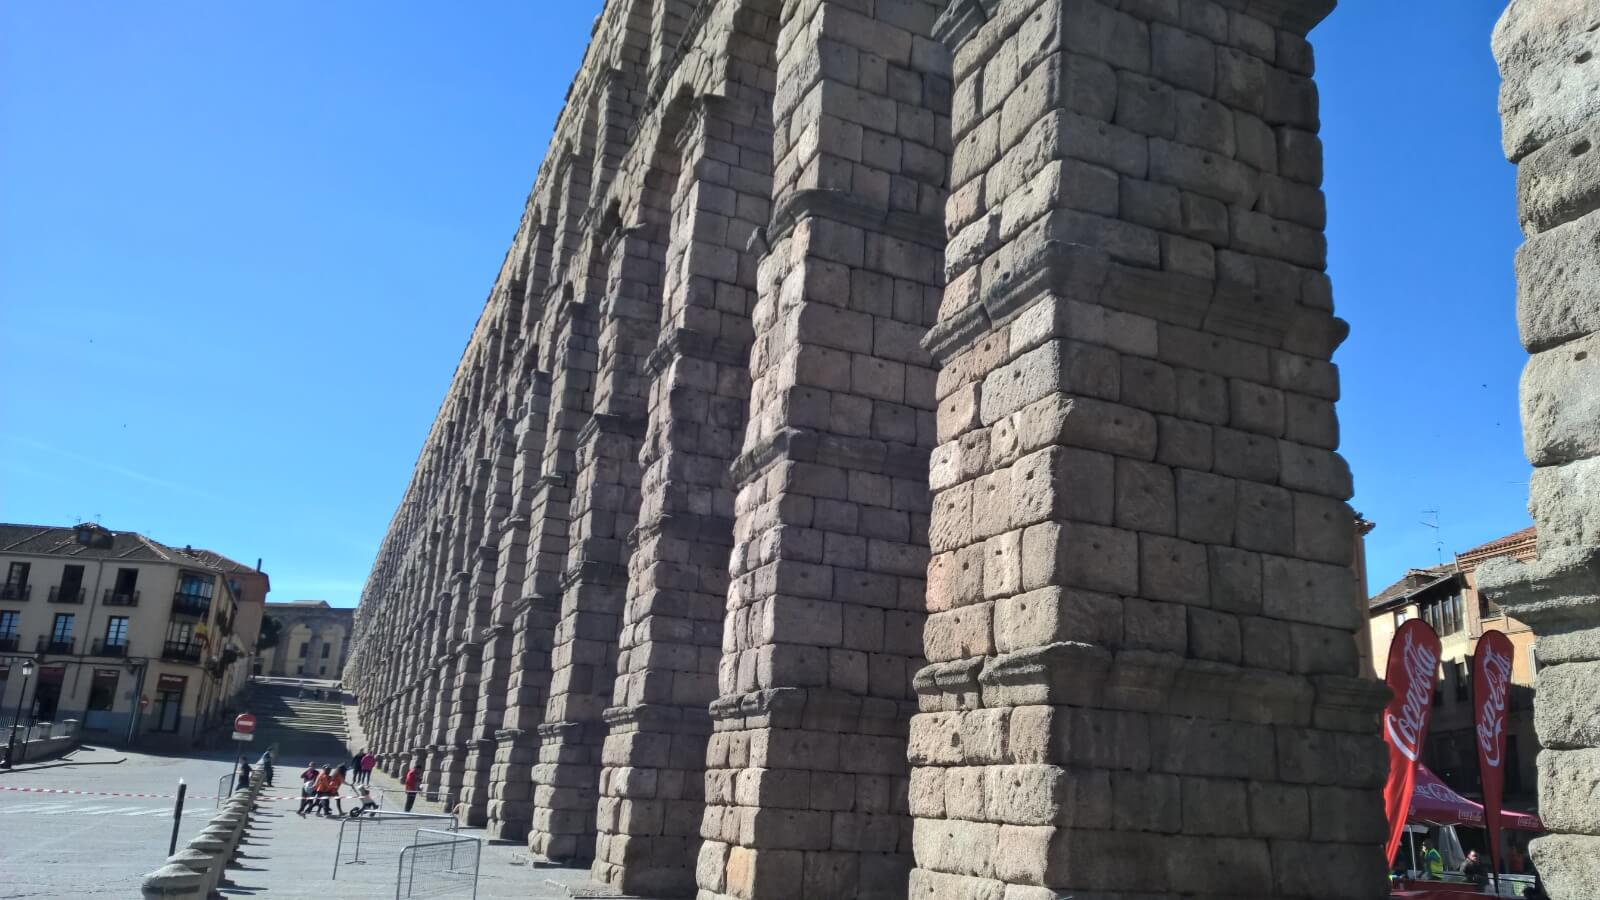 Top 10 virtual tours of Spain - 3. Aqueduct of Segovia